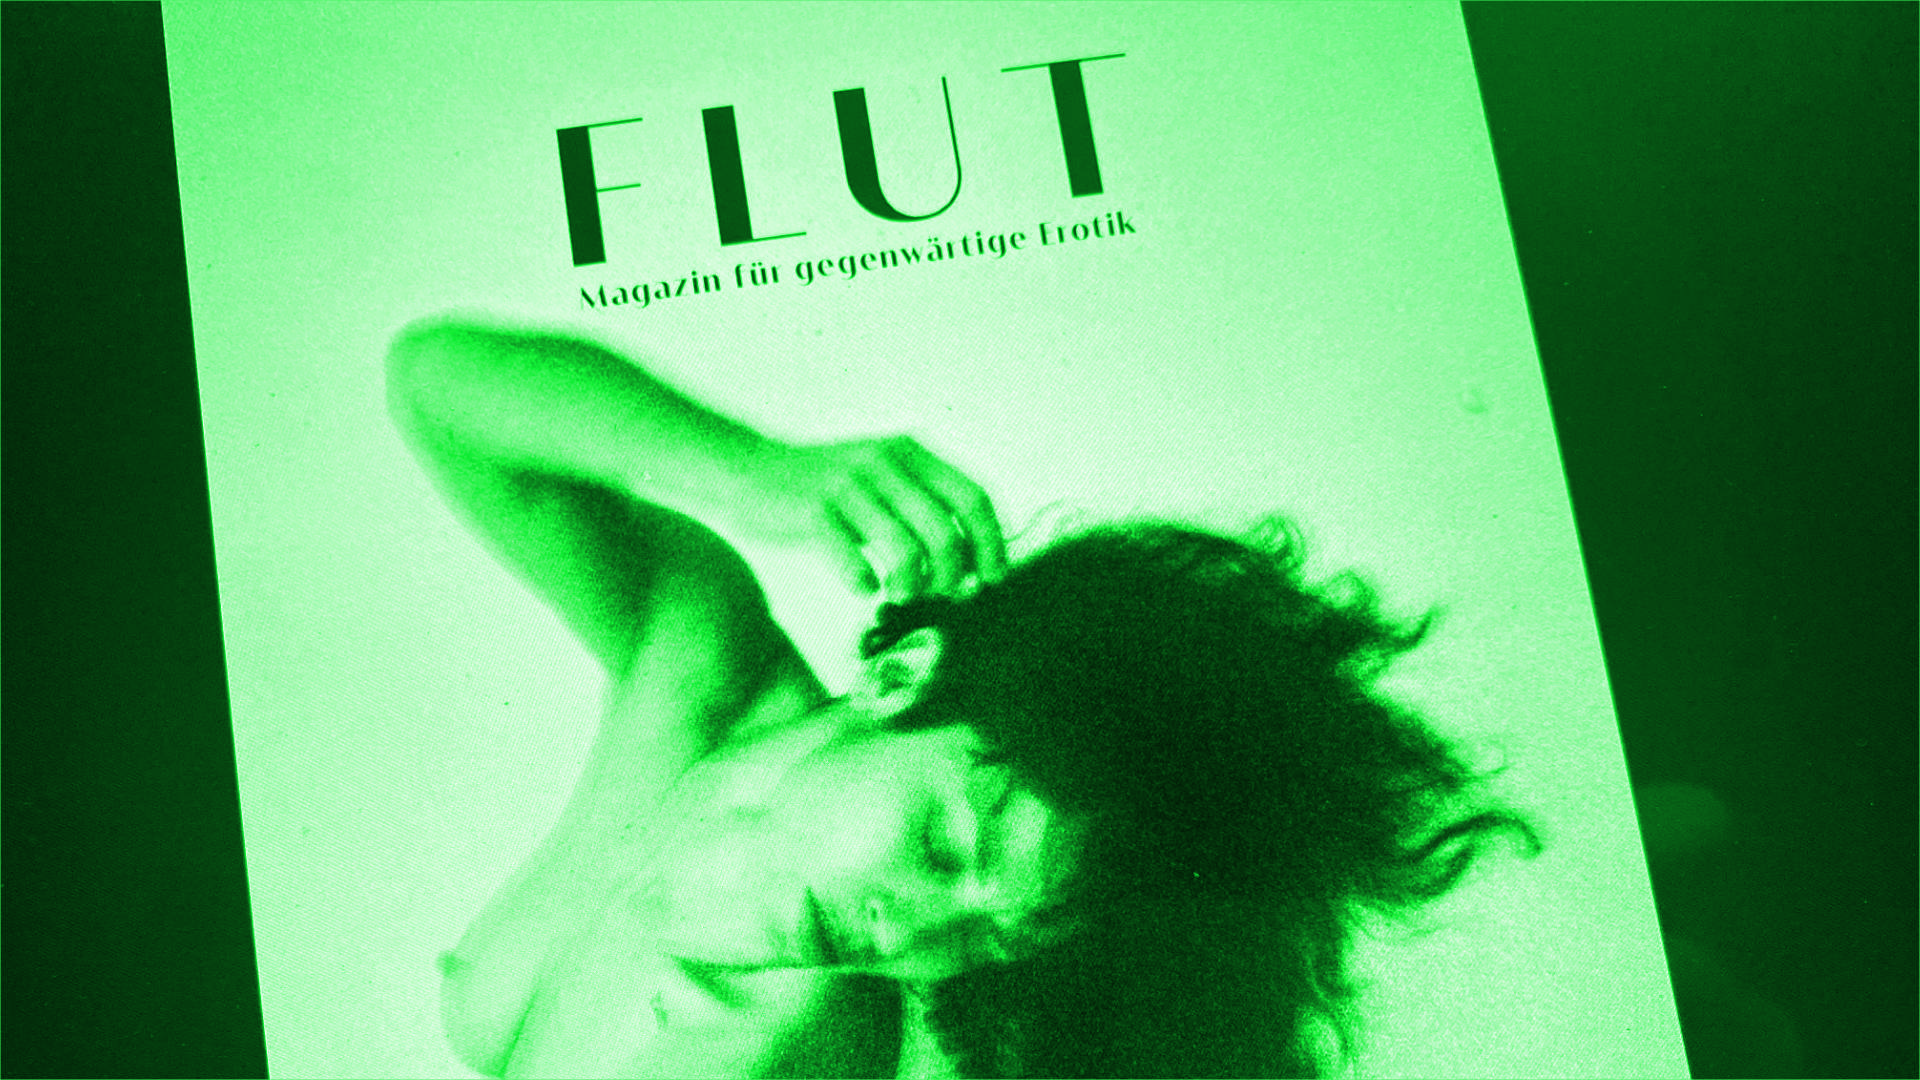 Introducing: FLUT Magazin